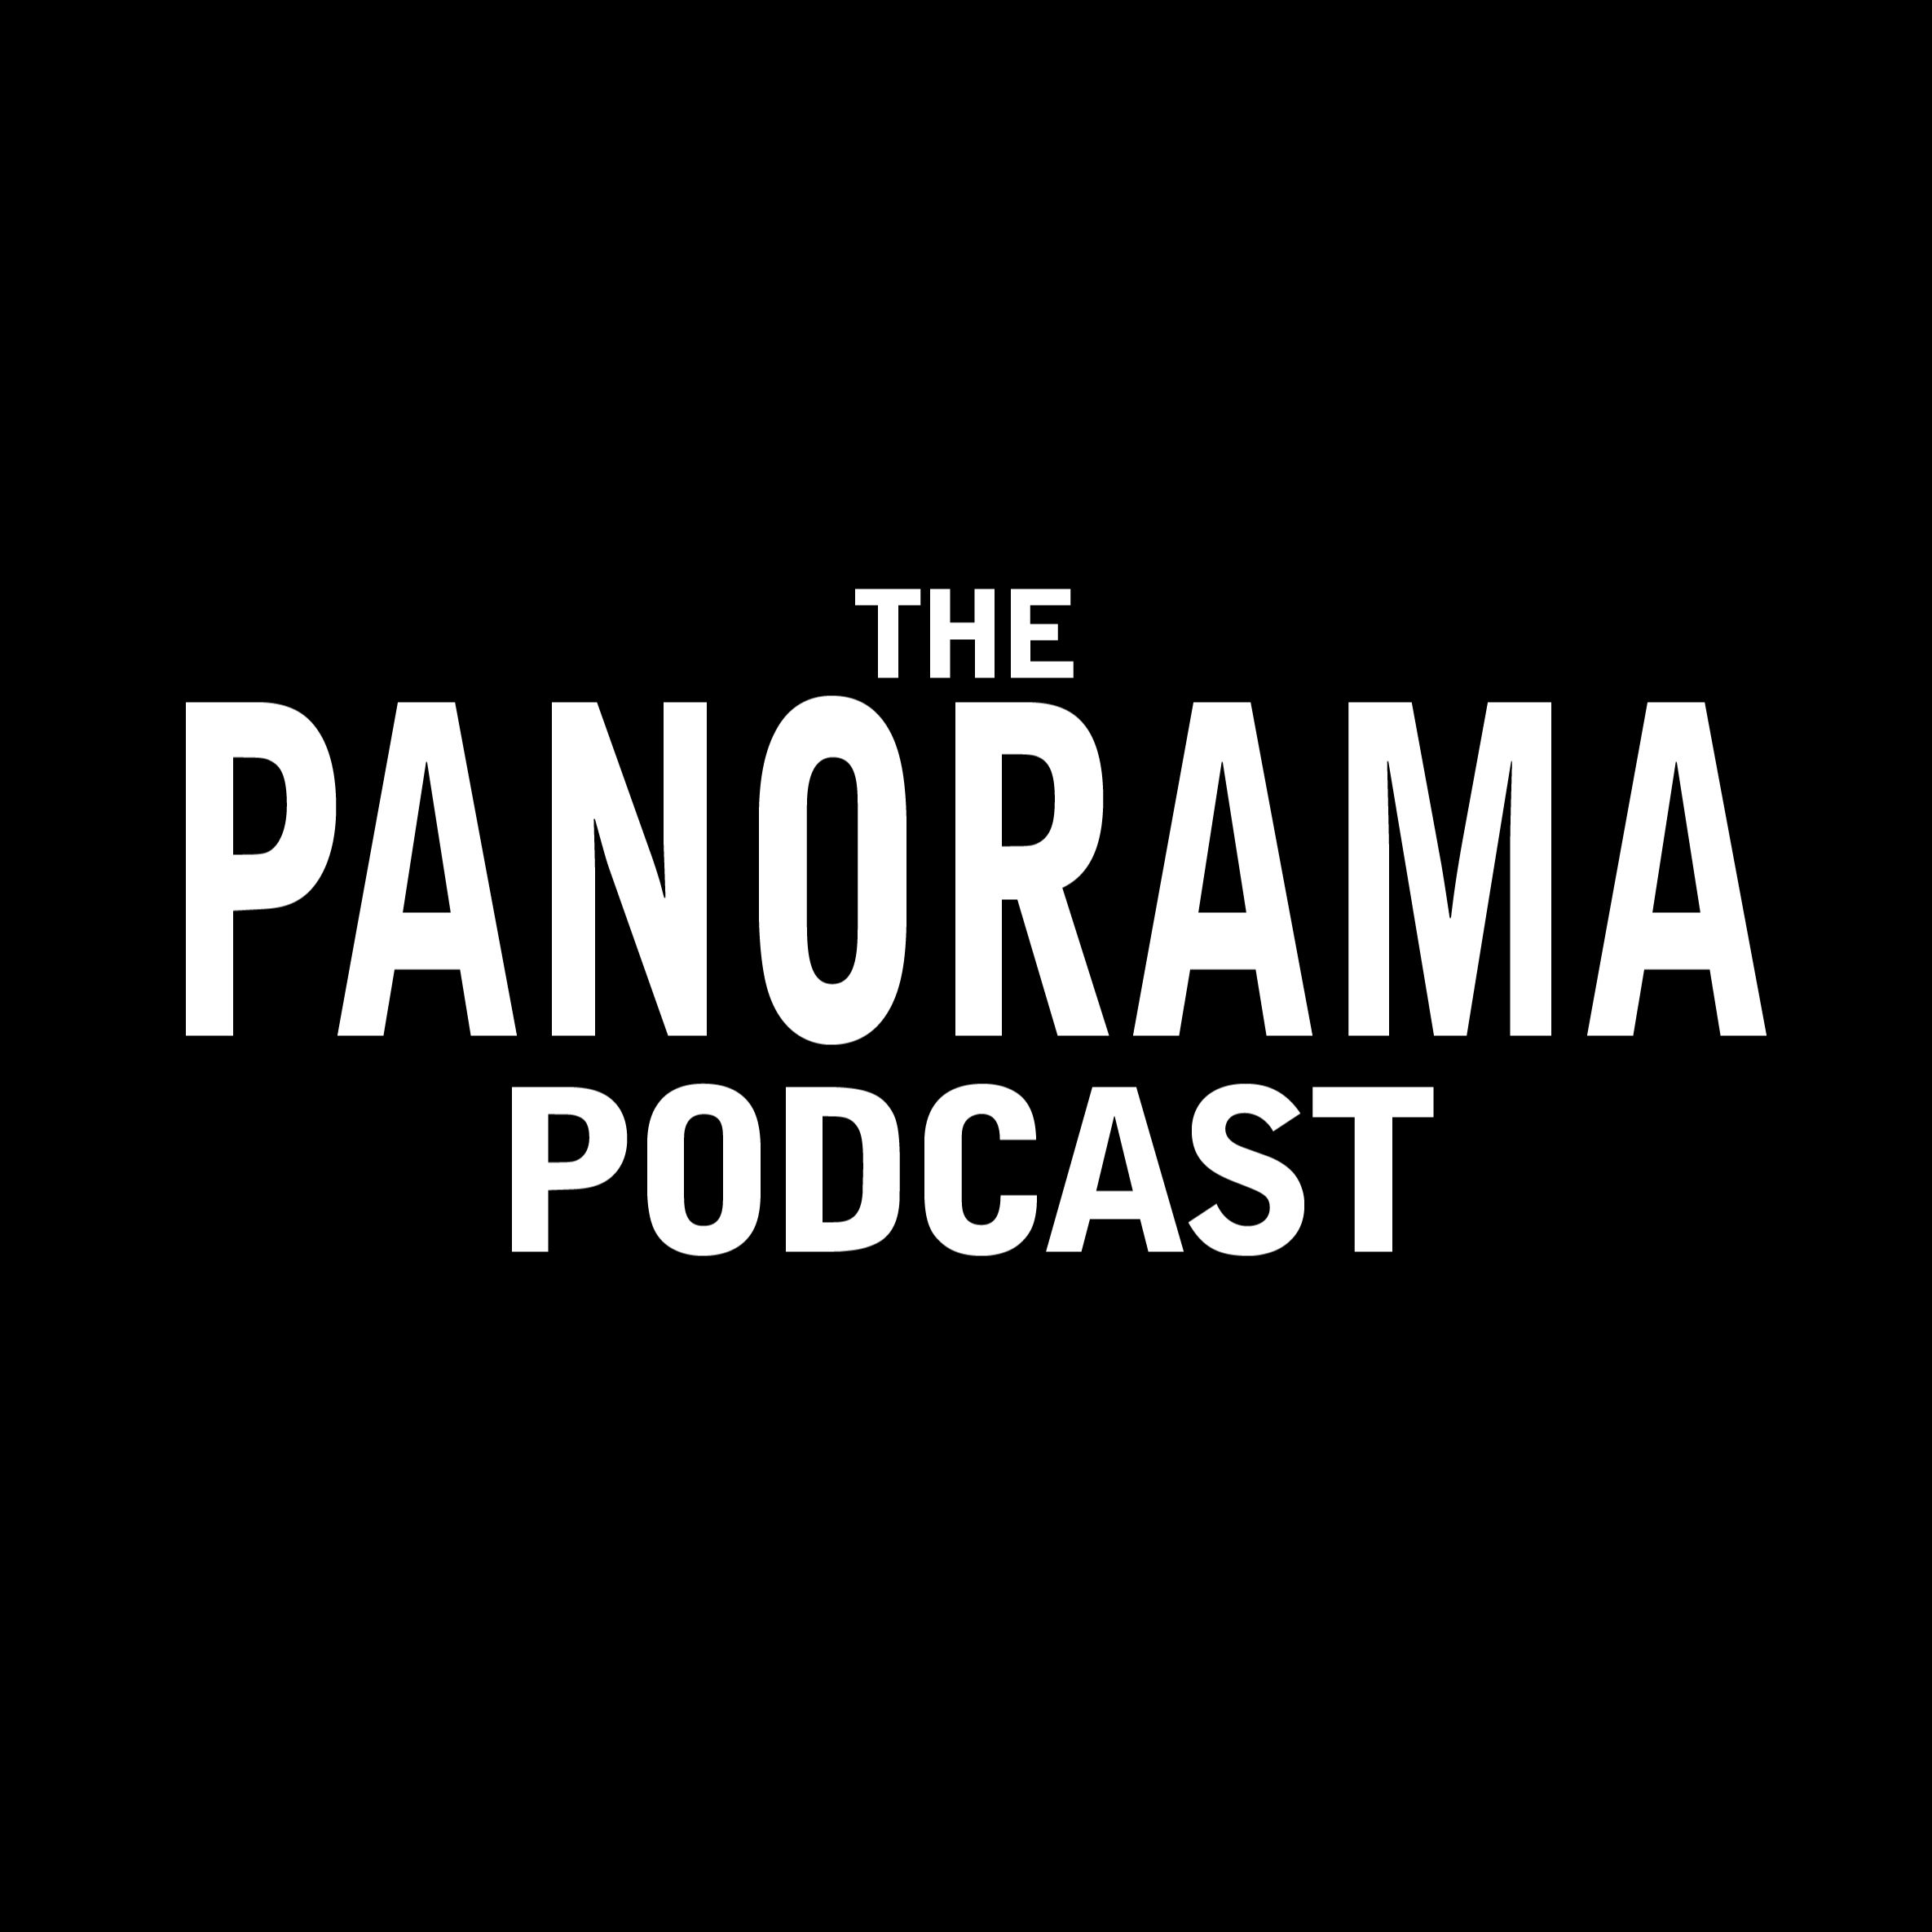 The Panorama Podcast | Listen via Stitcher for Podcasts